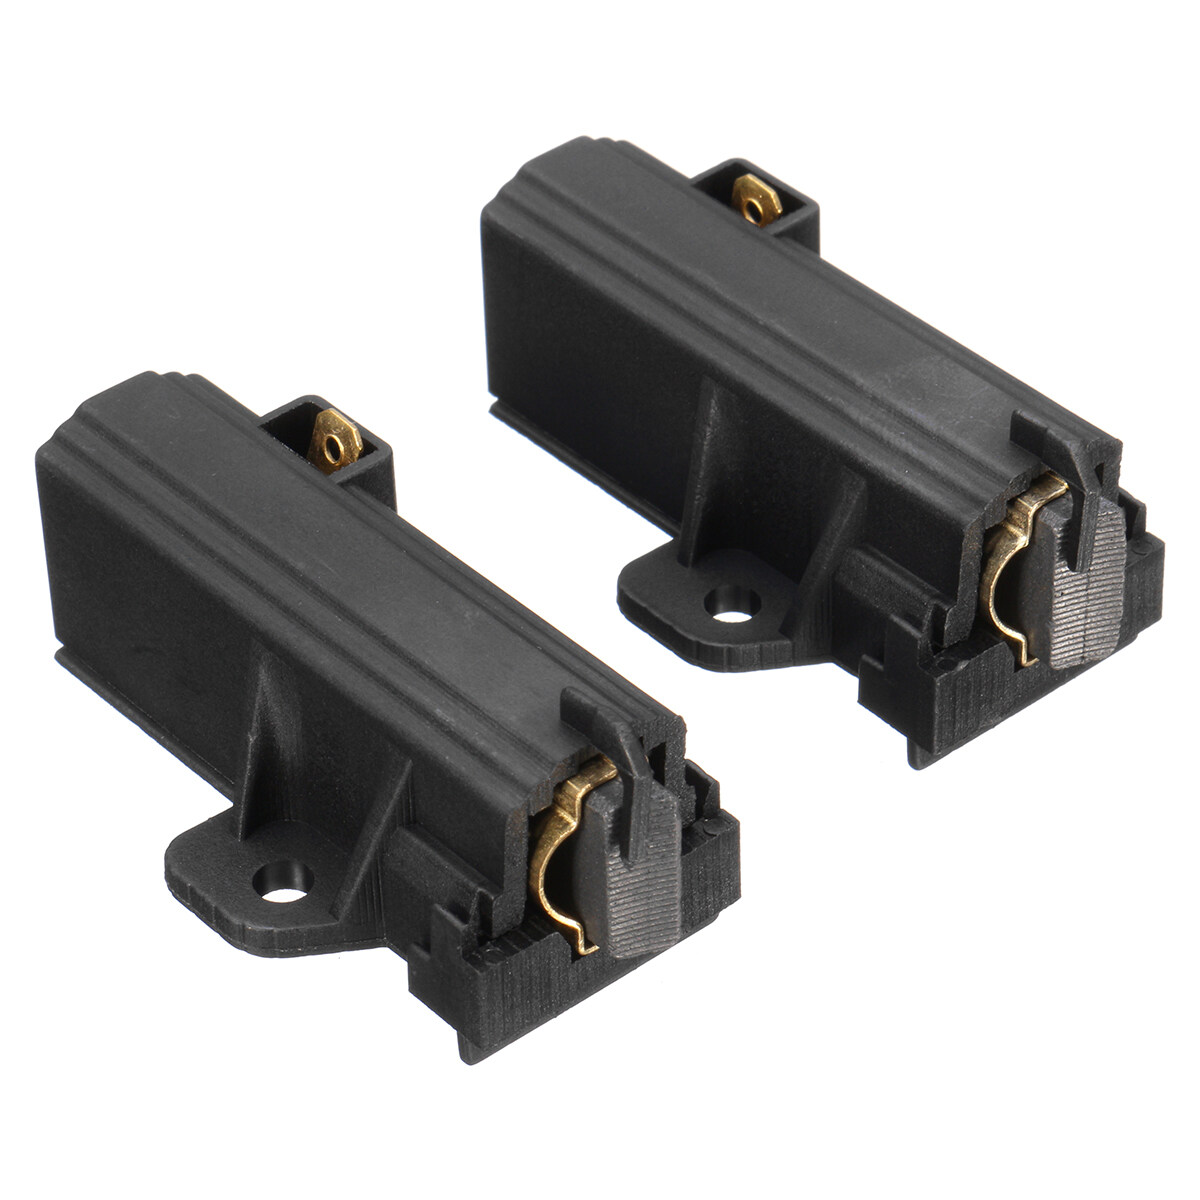 2x Best Quality Washing Machine Sole Motor Carbon Brushes For Electrolux